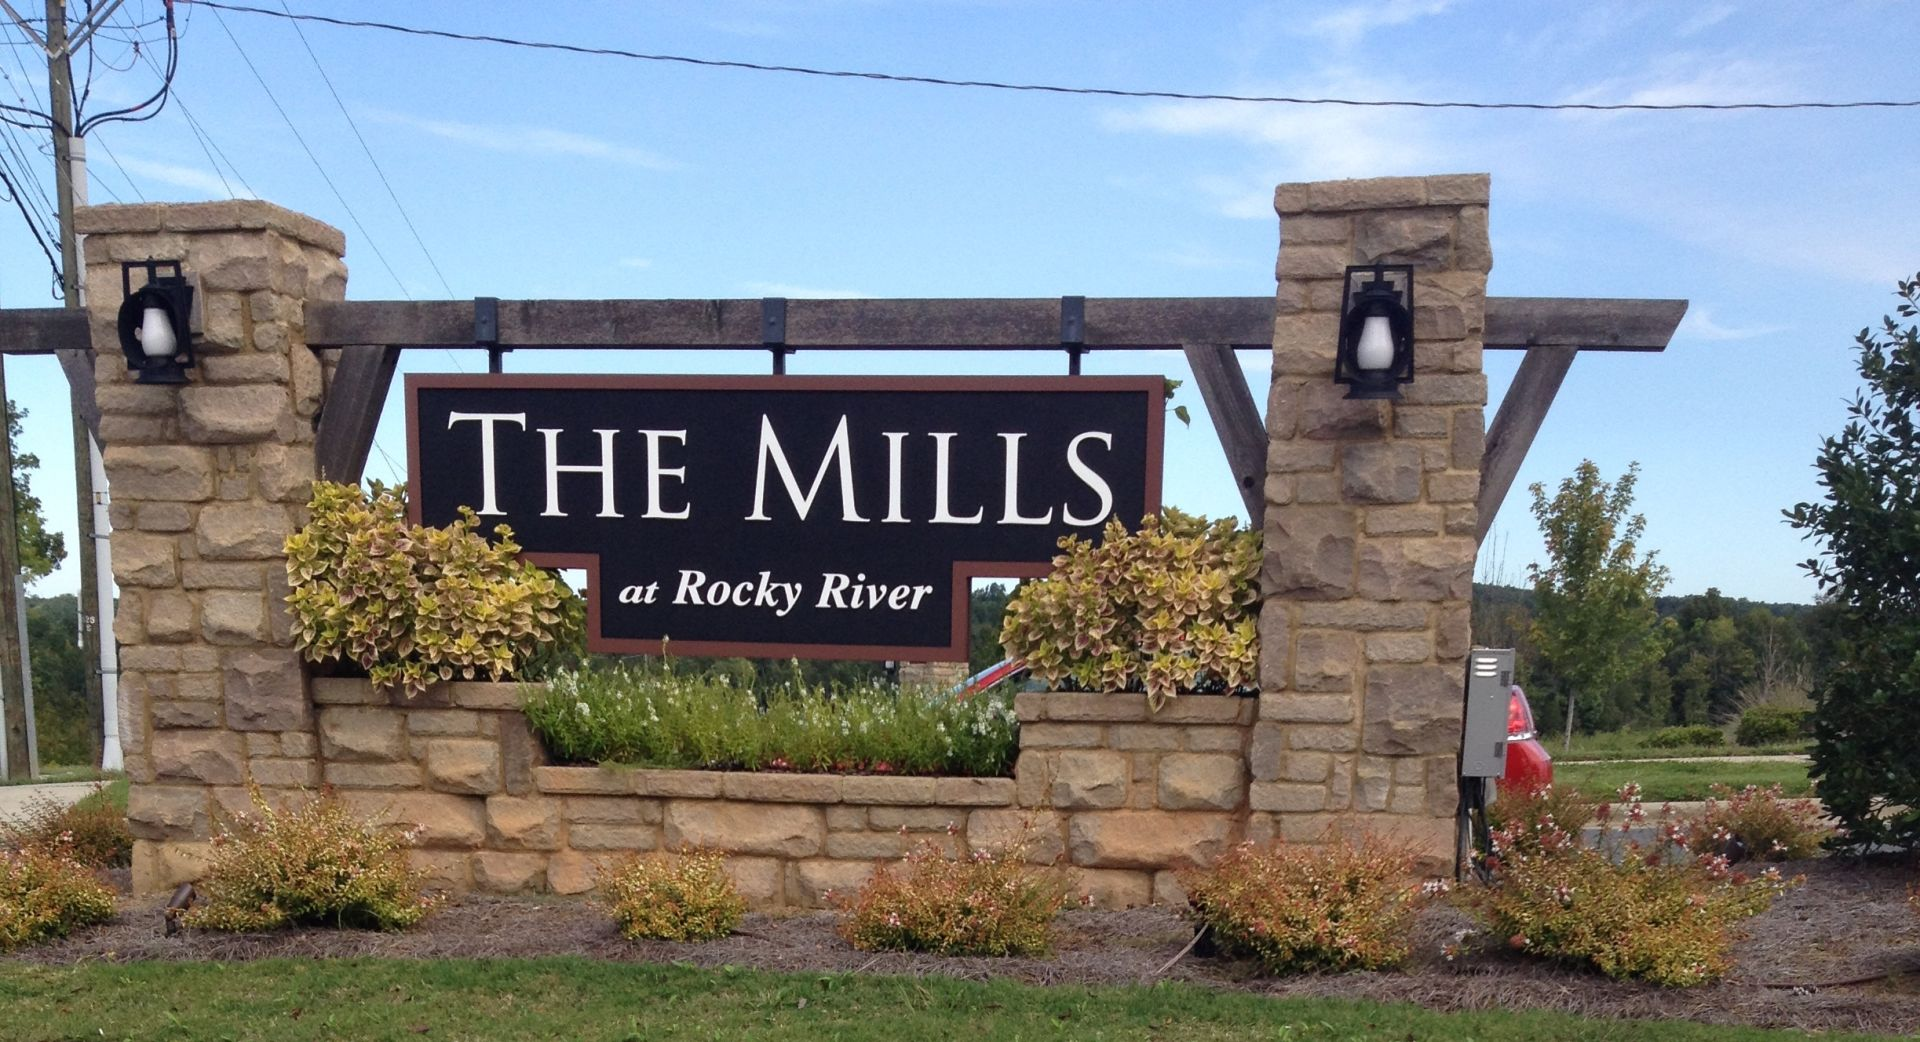 The Mills at Rocky River